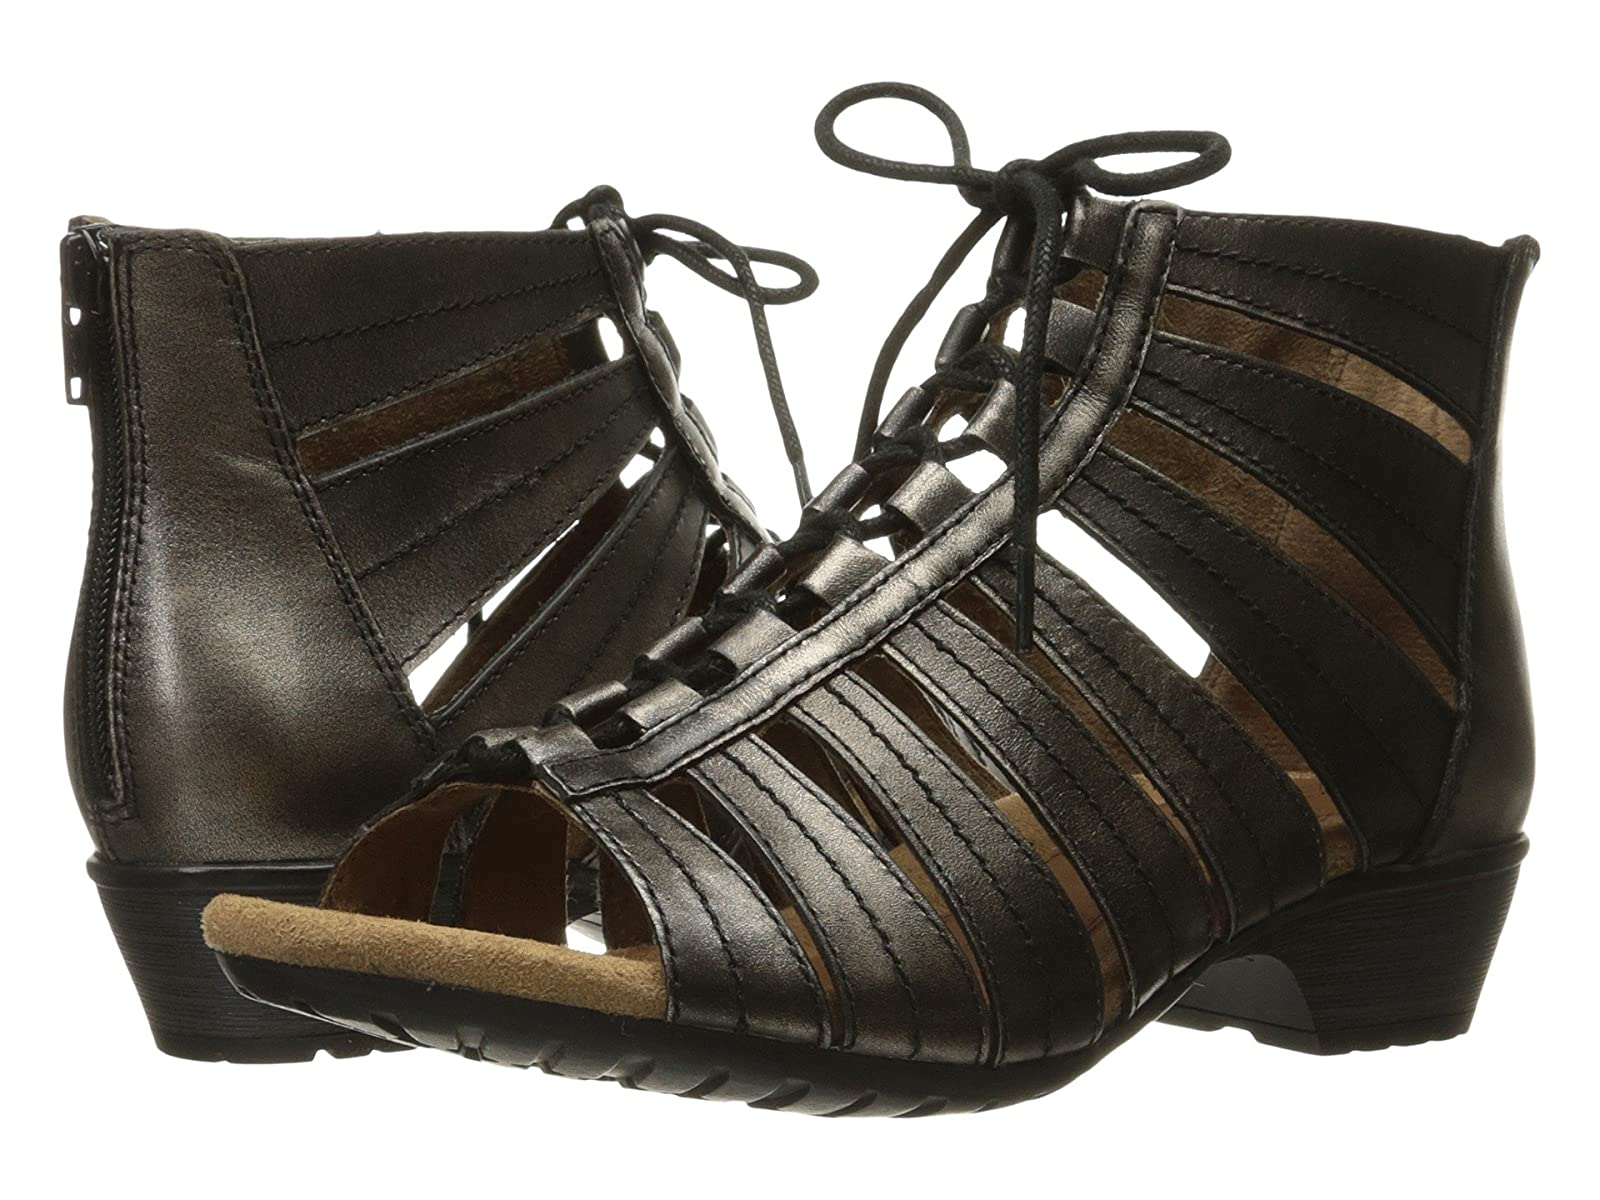 Rockport Cobb Hill Collection Cobb Hill GabbyCheap and distinctive eye-catching shoes